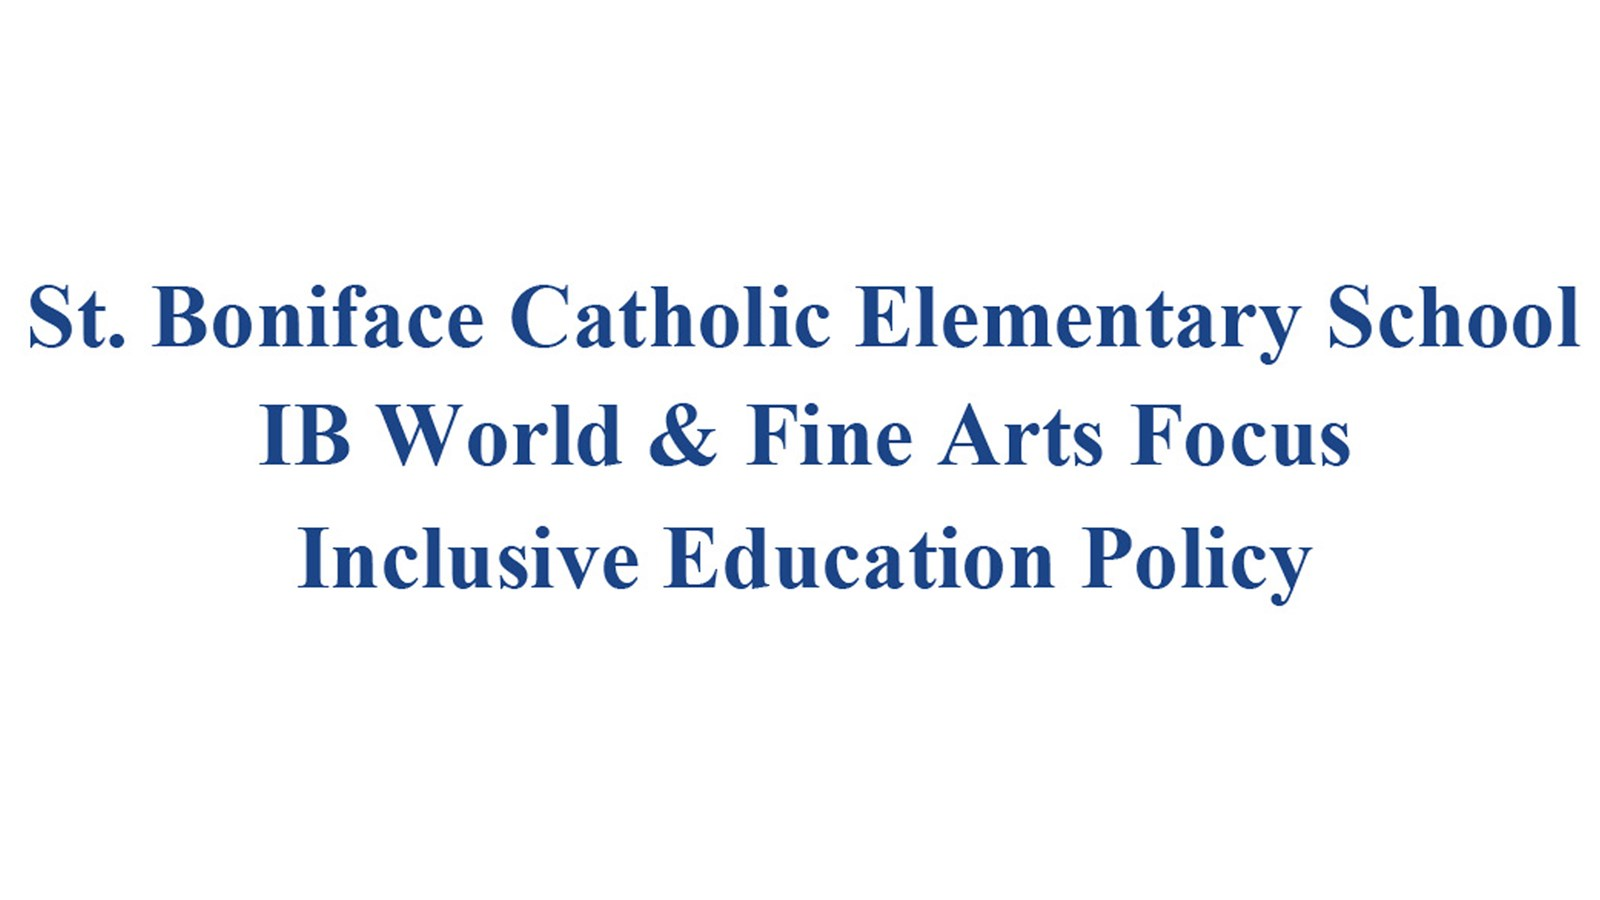 St. Boniface Inclusive Education Policy Banner.jpg